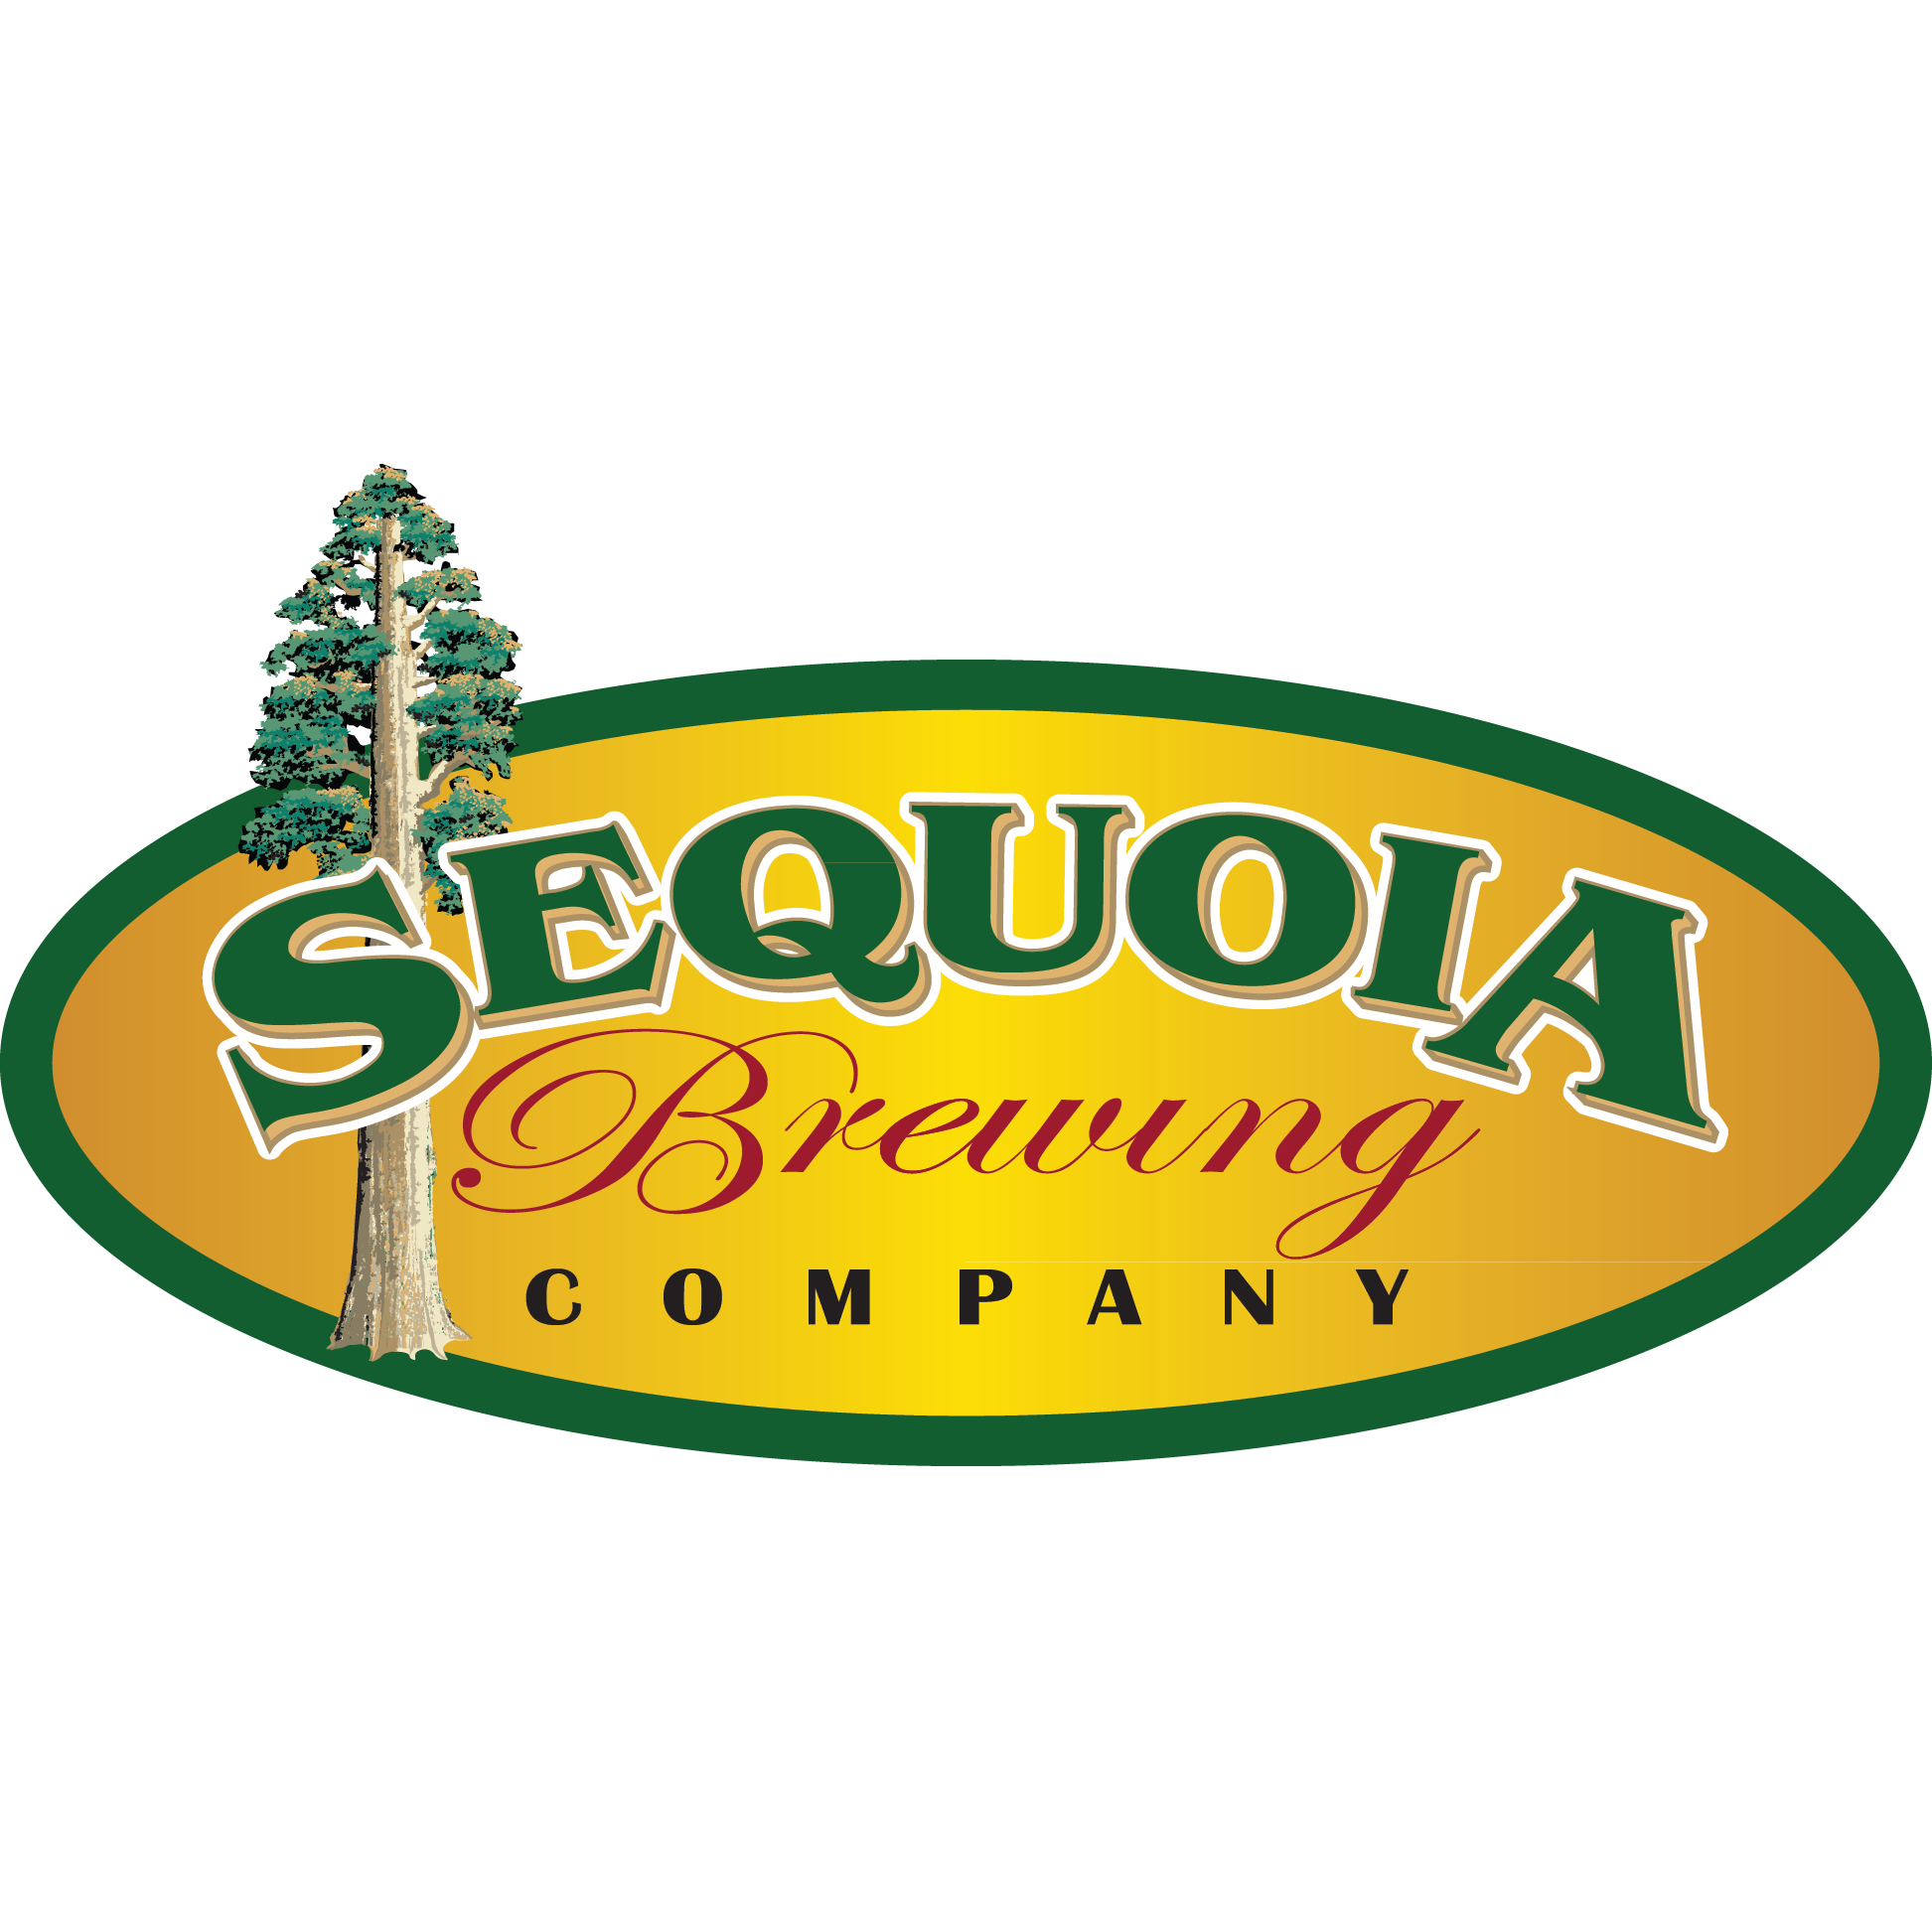 Sequoia Brewing Co.